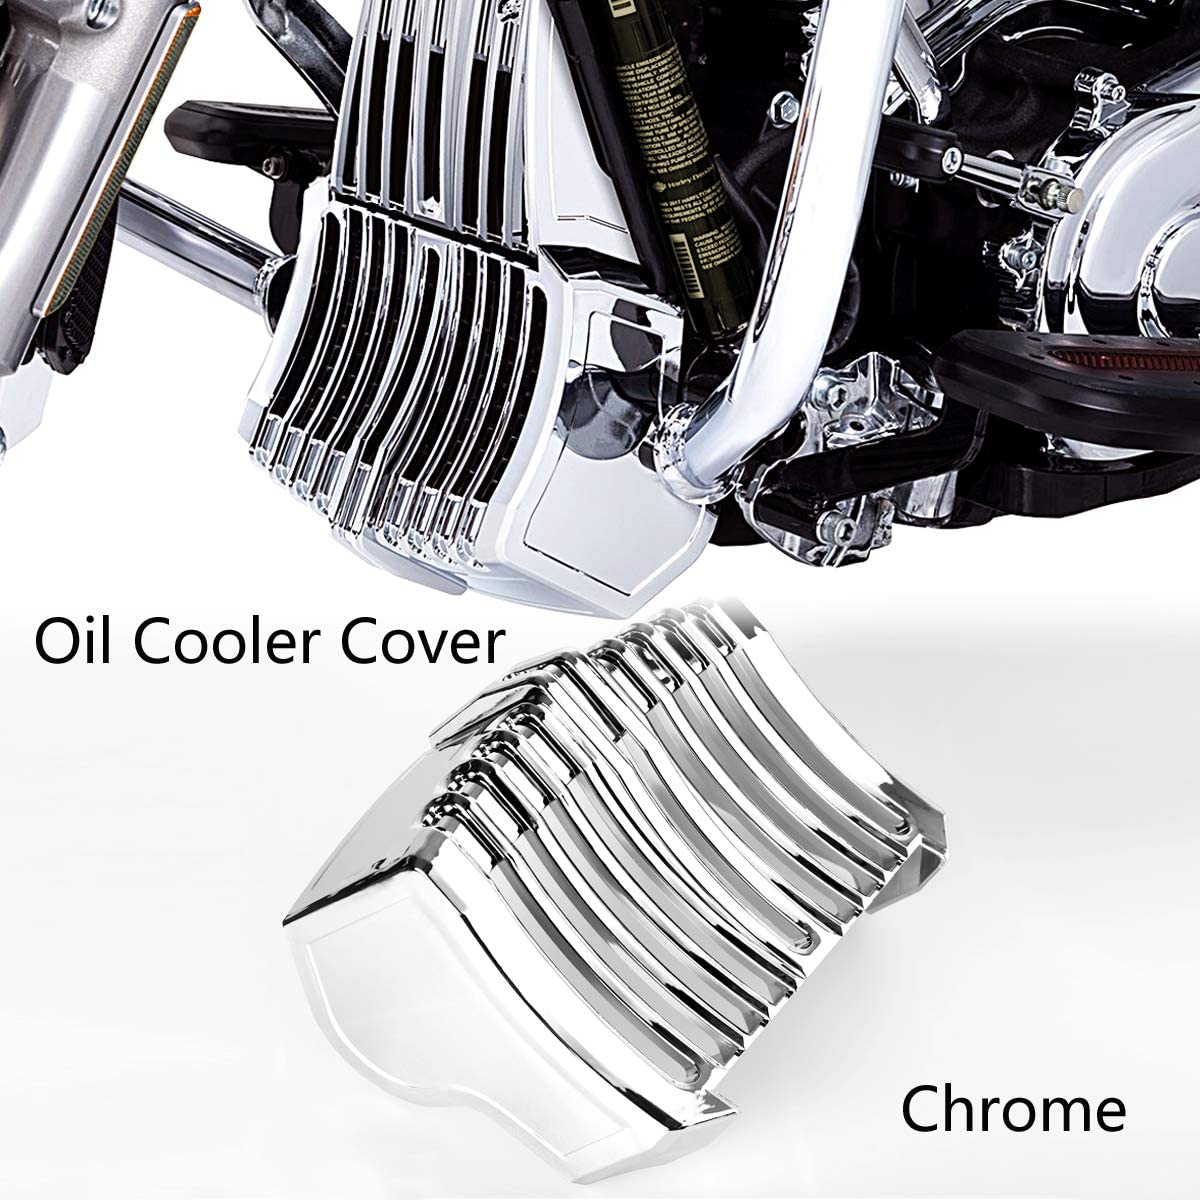 Amazon Com Chrome Precision Oil Cooler Cover For Harley Touring Street Glide Flhx 2017 2018 Automotive